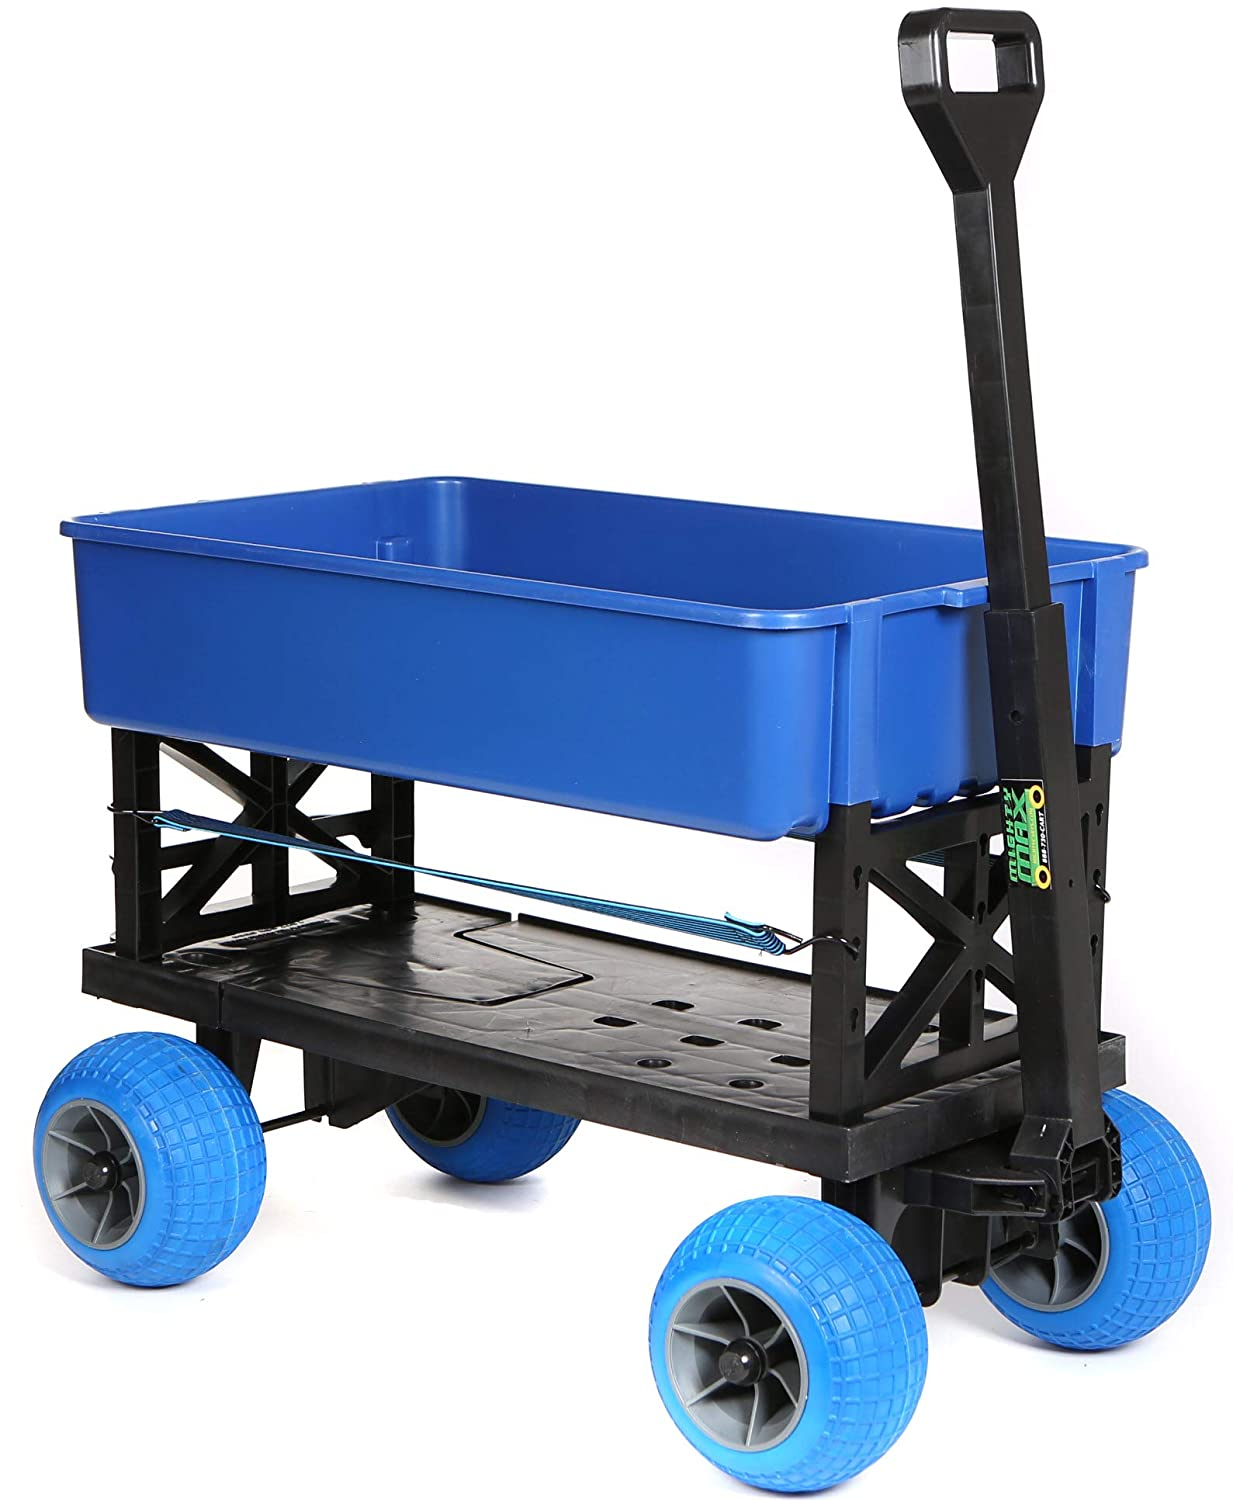 Equipment Carts and Wagons Rolling 4 Wheel Pull behind Cooler Ice Chest Garden Cart